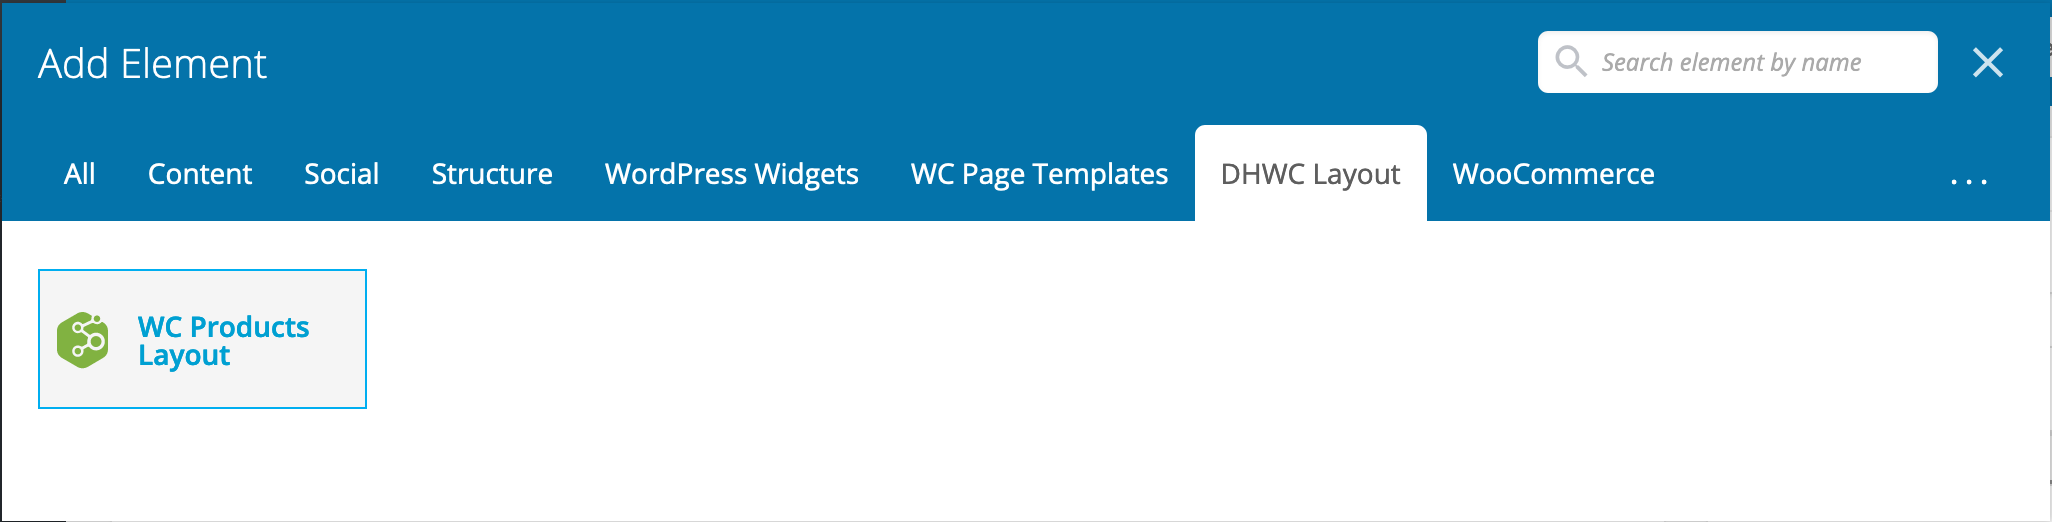 DHWCLayout - Woocommerce Products Layouts - 2